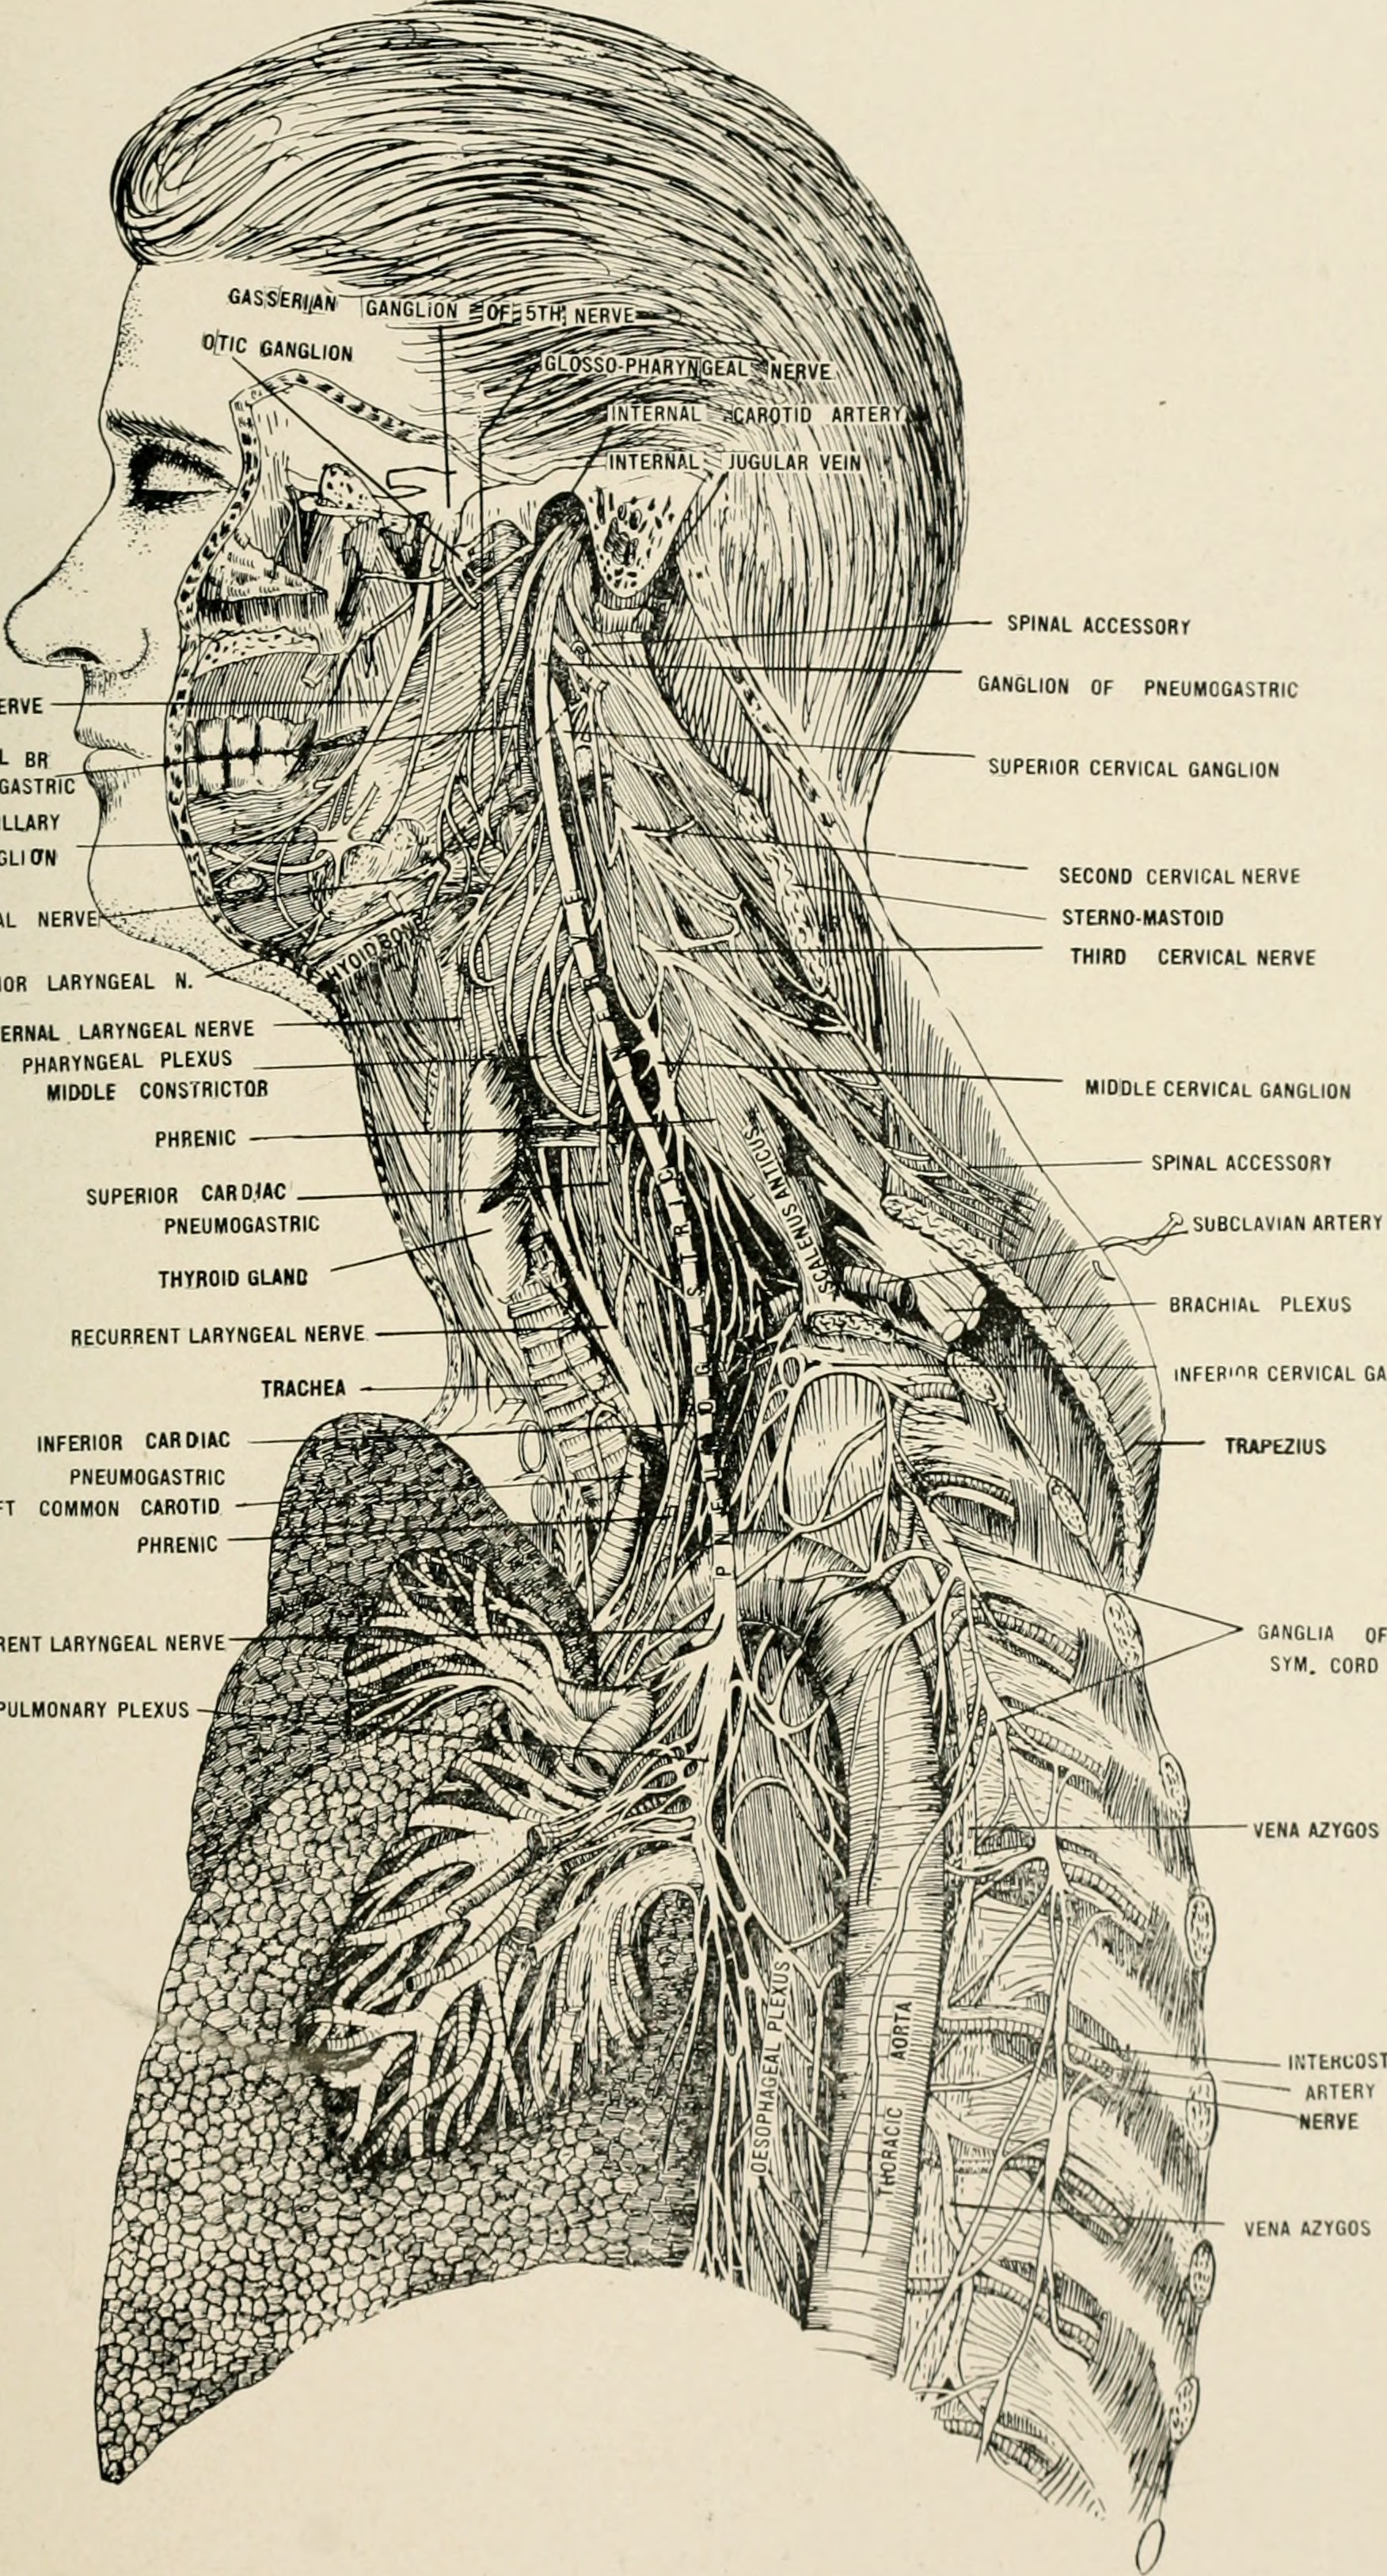 Fileanatomy In A Nutshell A Treatise On Human Anatomy In Its